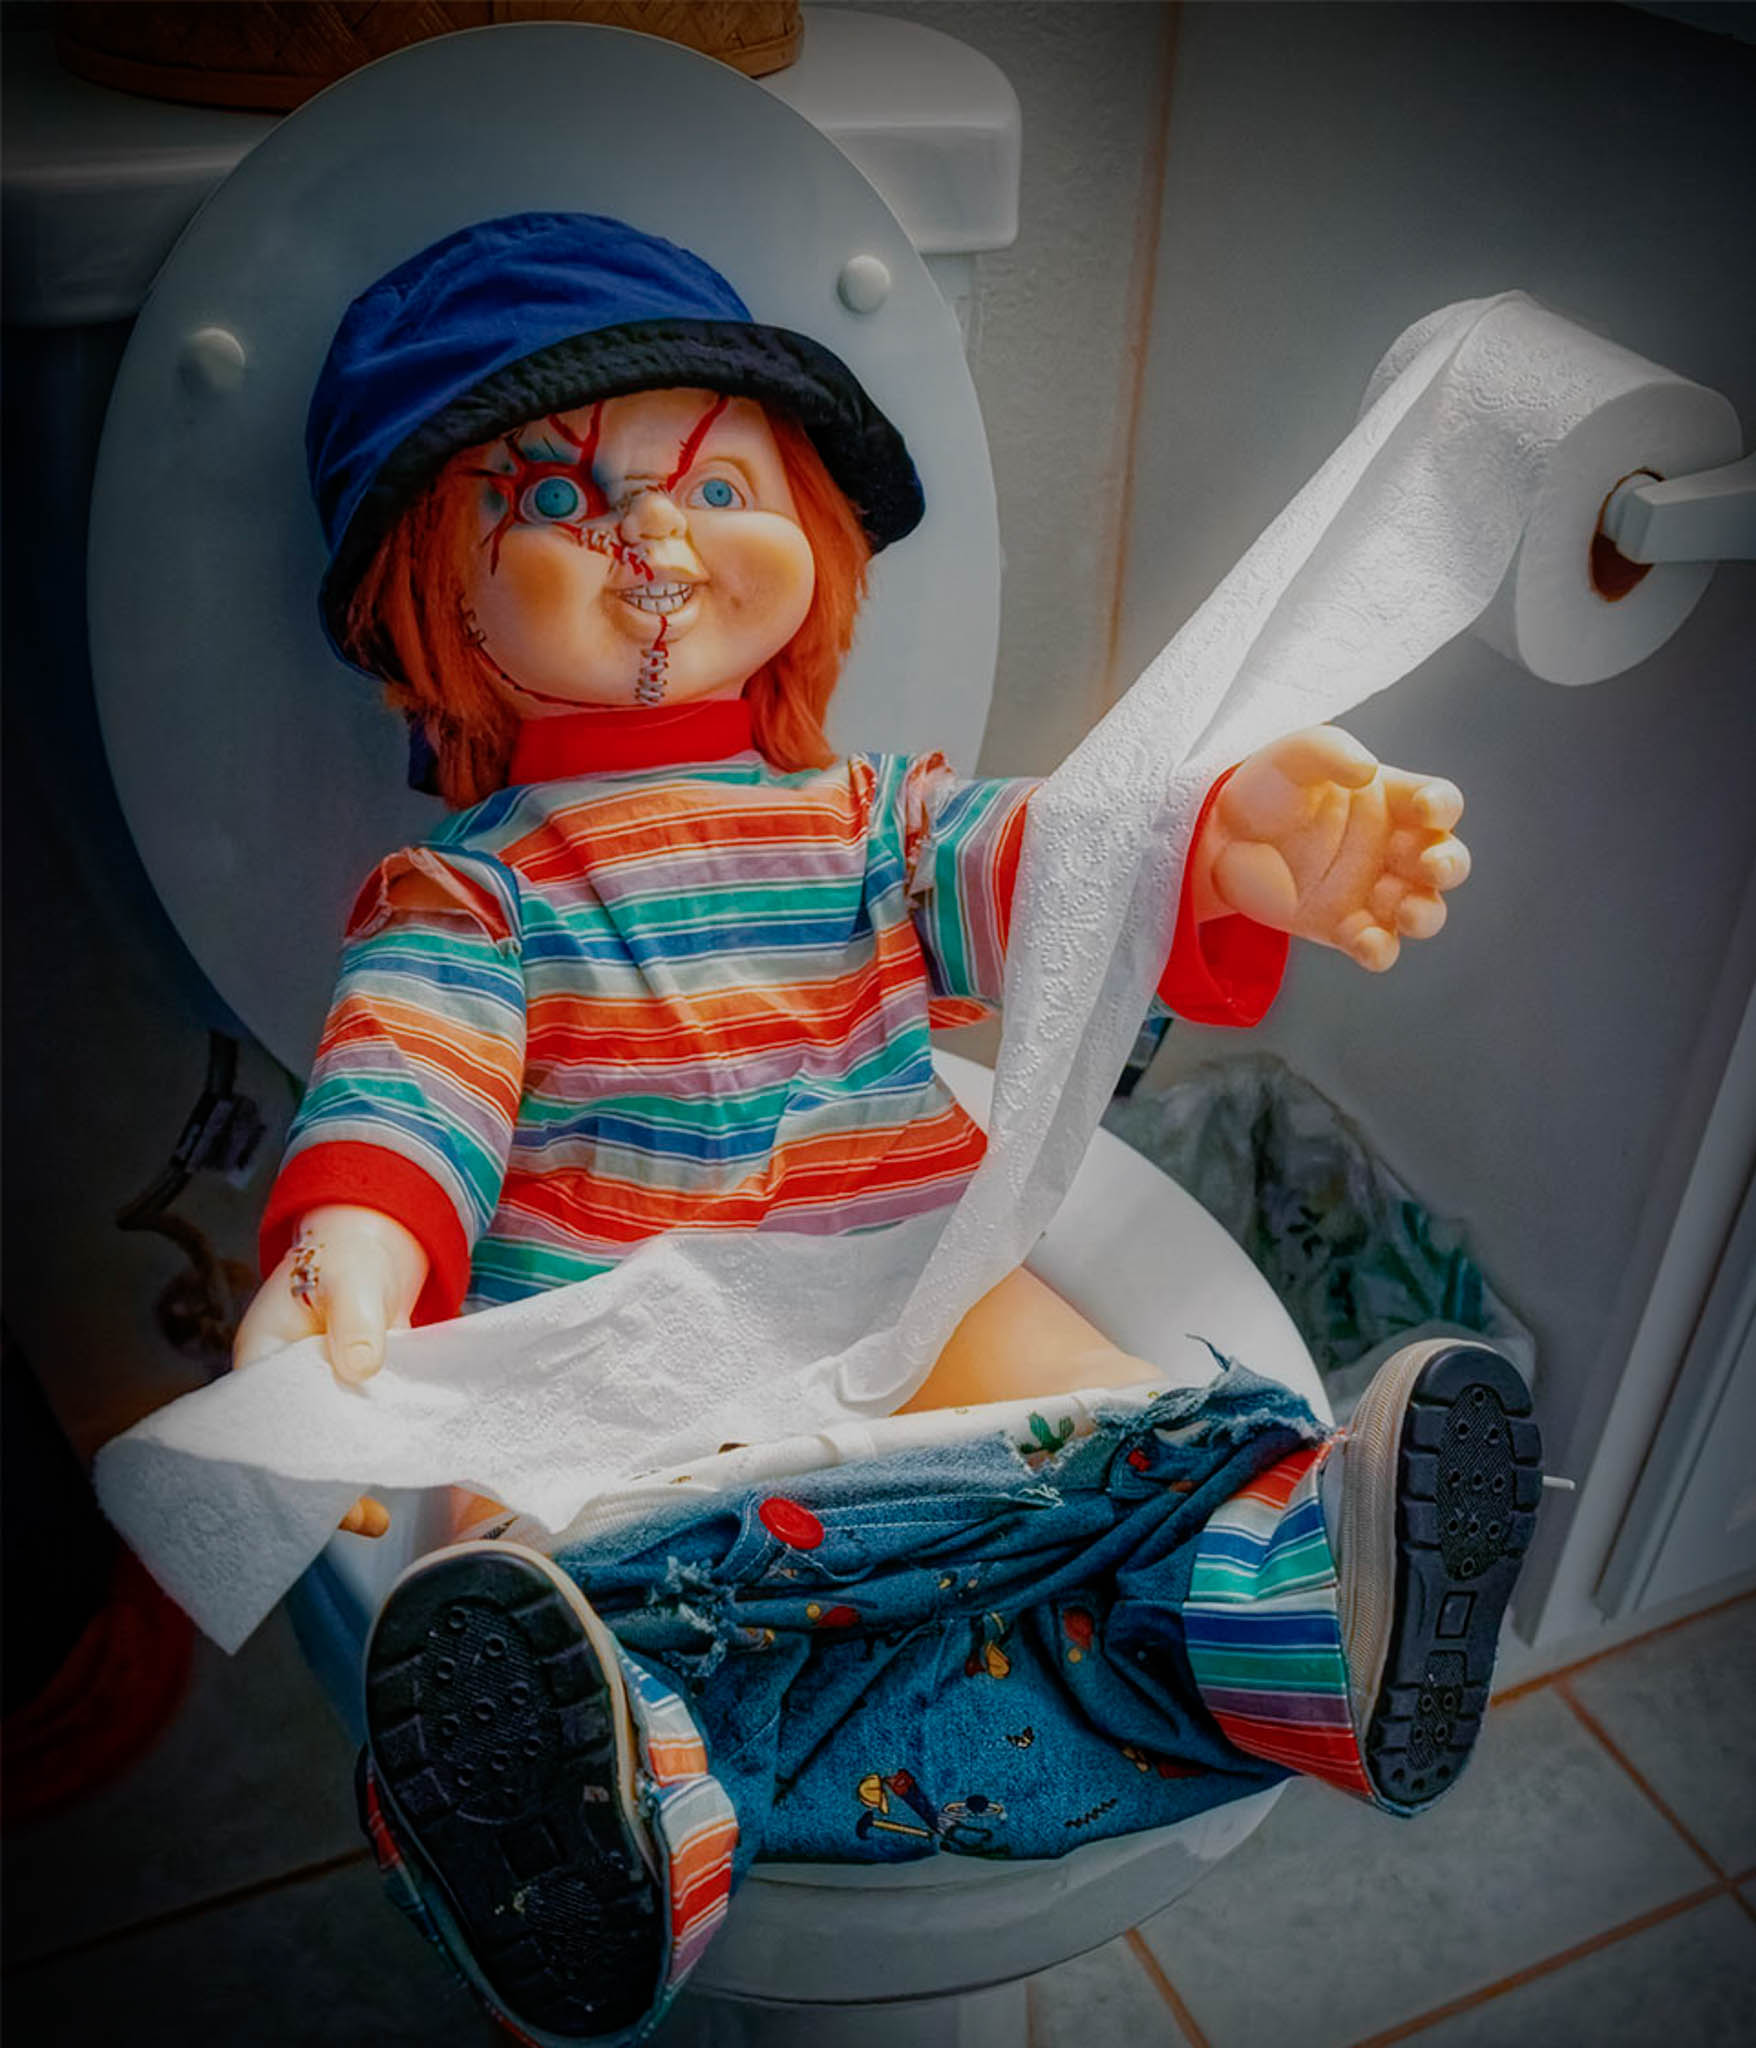 Chucky on the toilet, Andrea Savage photographer, Photography Scavenger Hunt